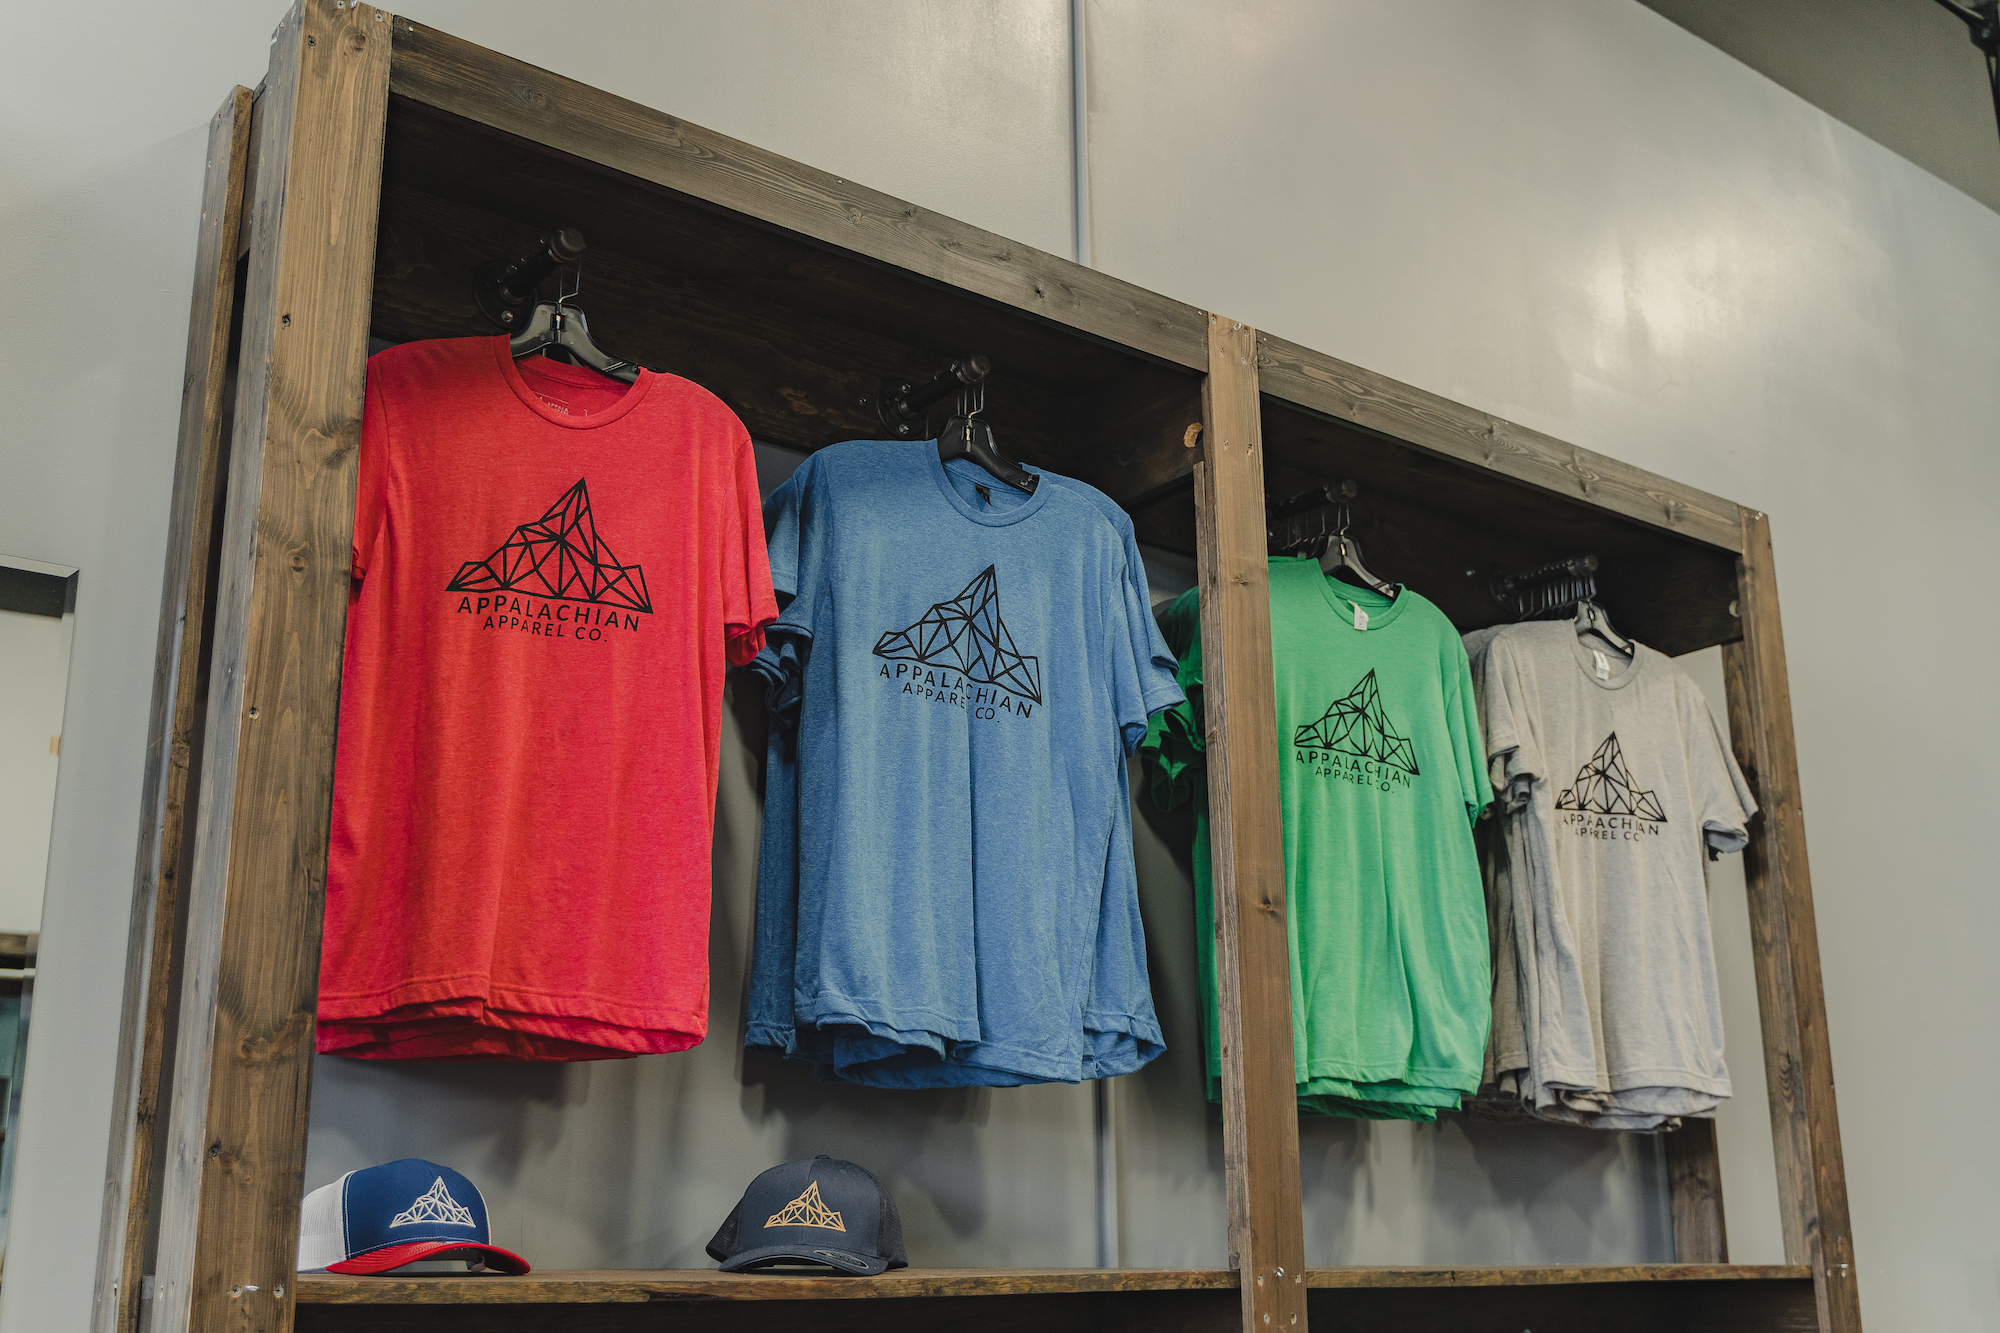 inside Appalachian apparel company at the mountain mile mall in pigeon forge Tennessee